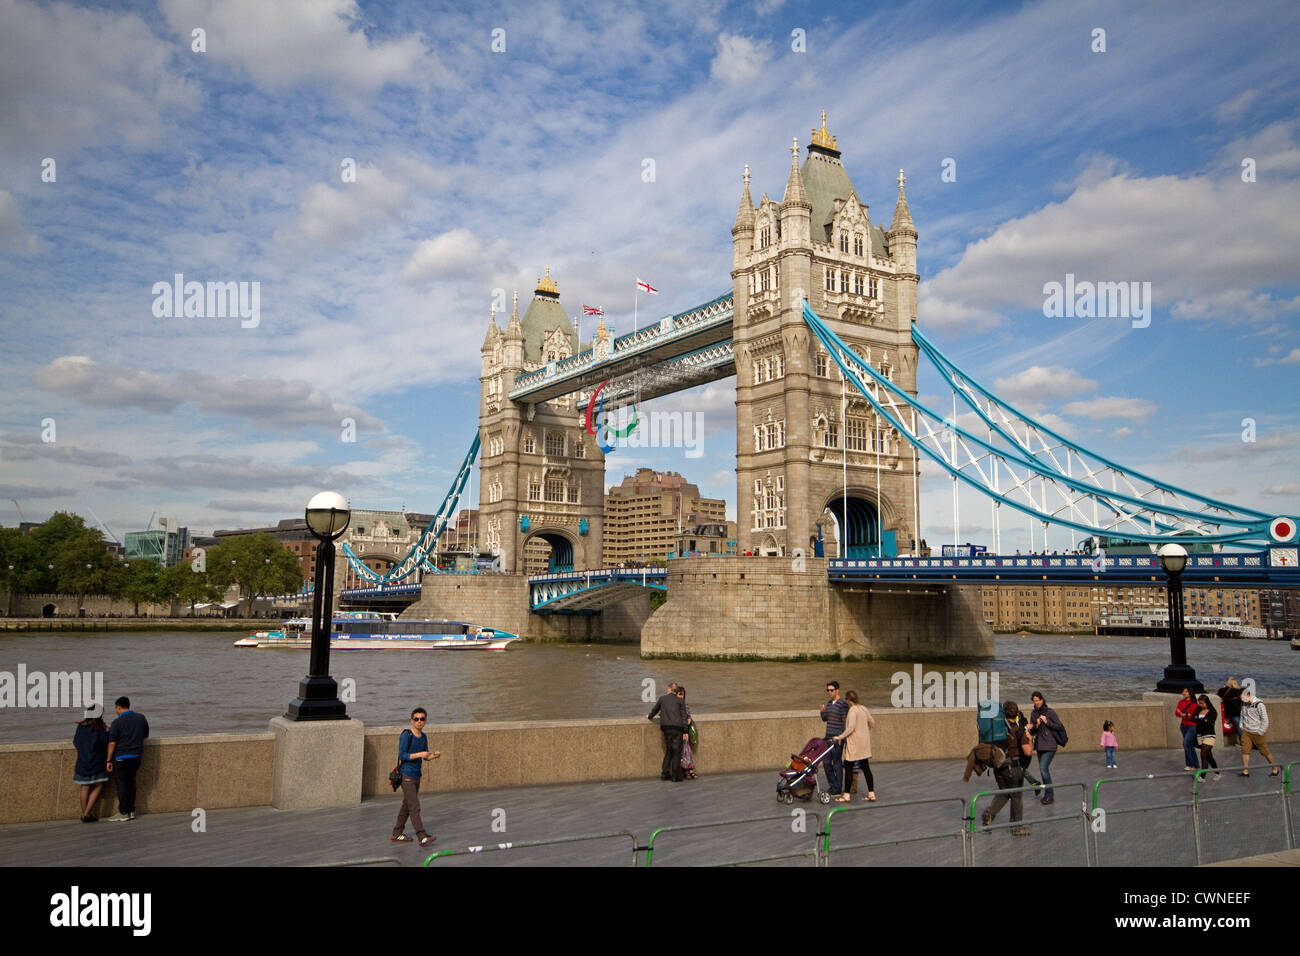 Tower Bridge in London which crosses the River Thames it has the Paralympic symbol on the top during the games 2012 - Stock Image